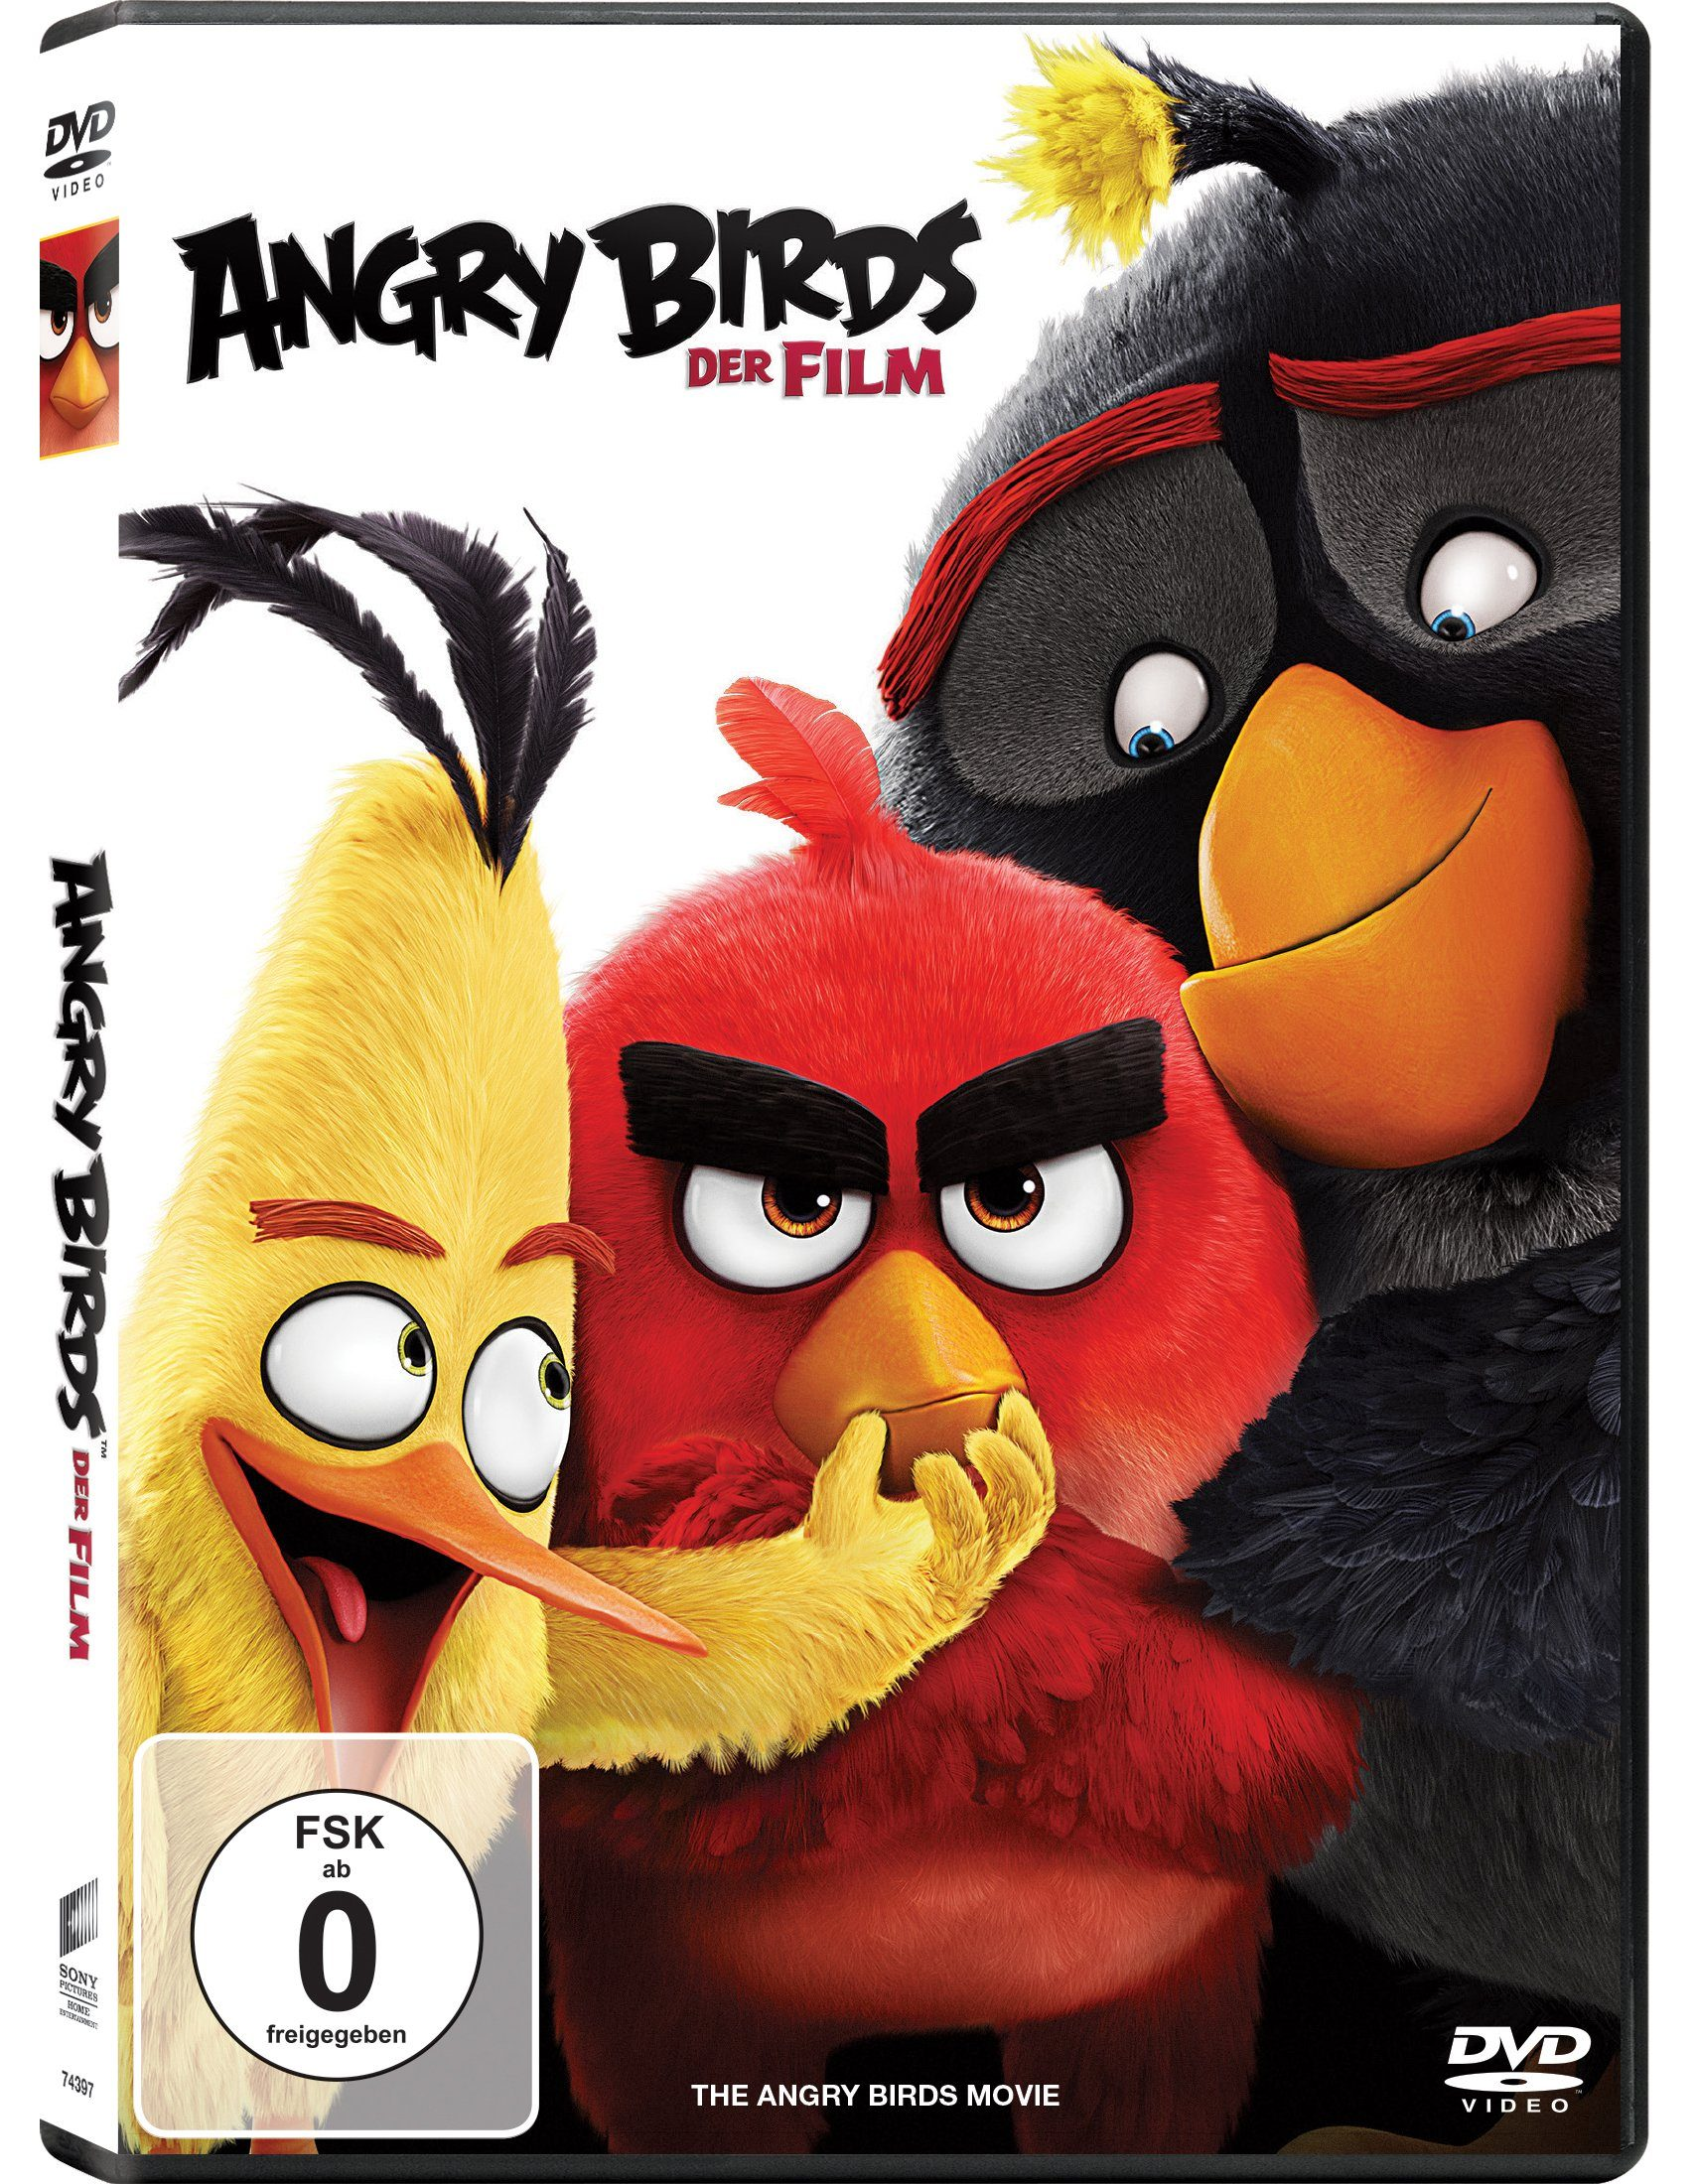 Sony Pictures DVD »Angry Birds - Der Film«